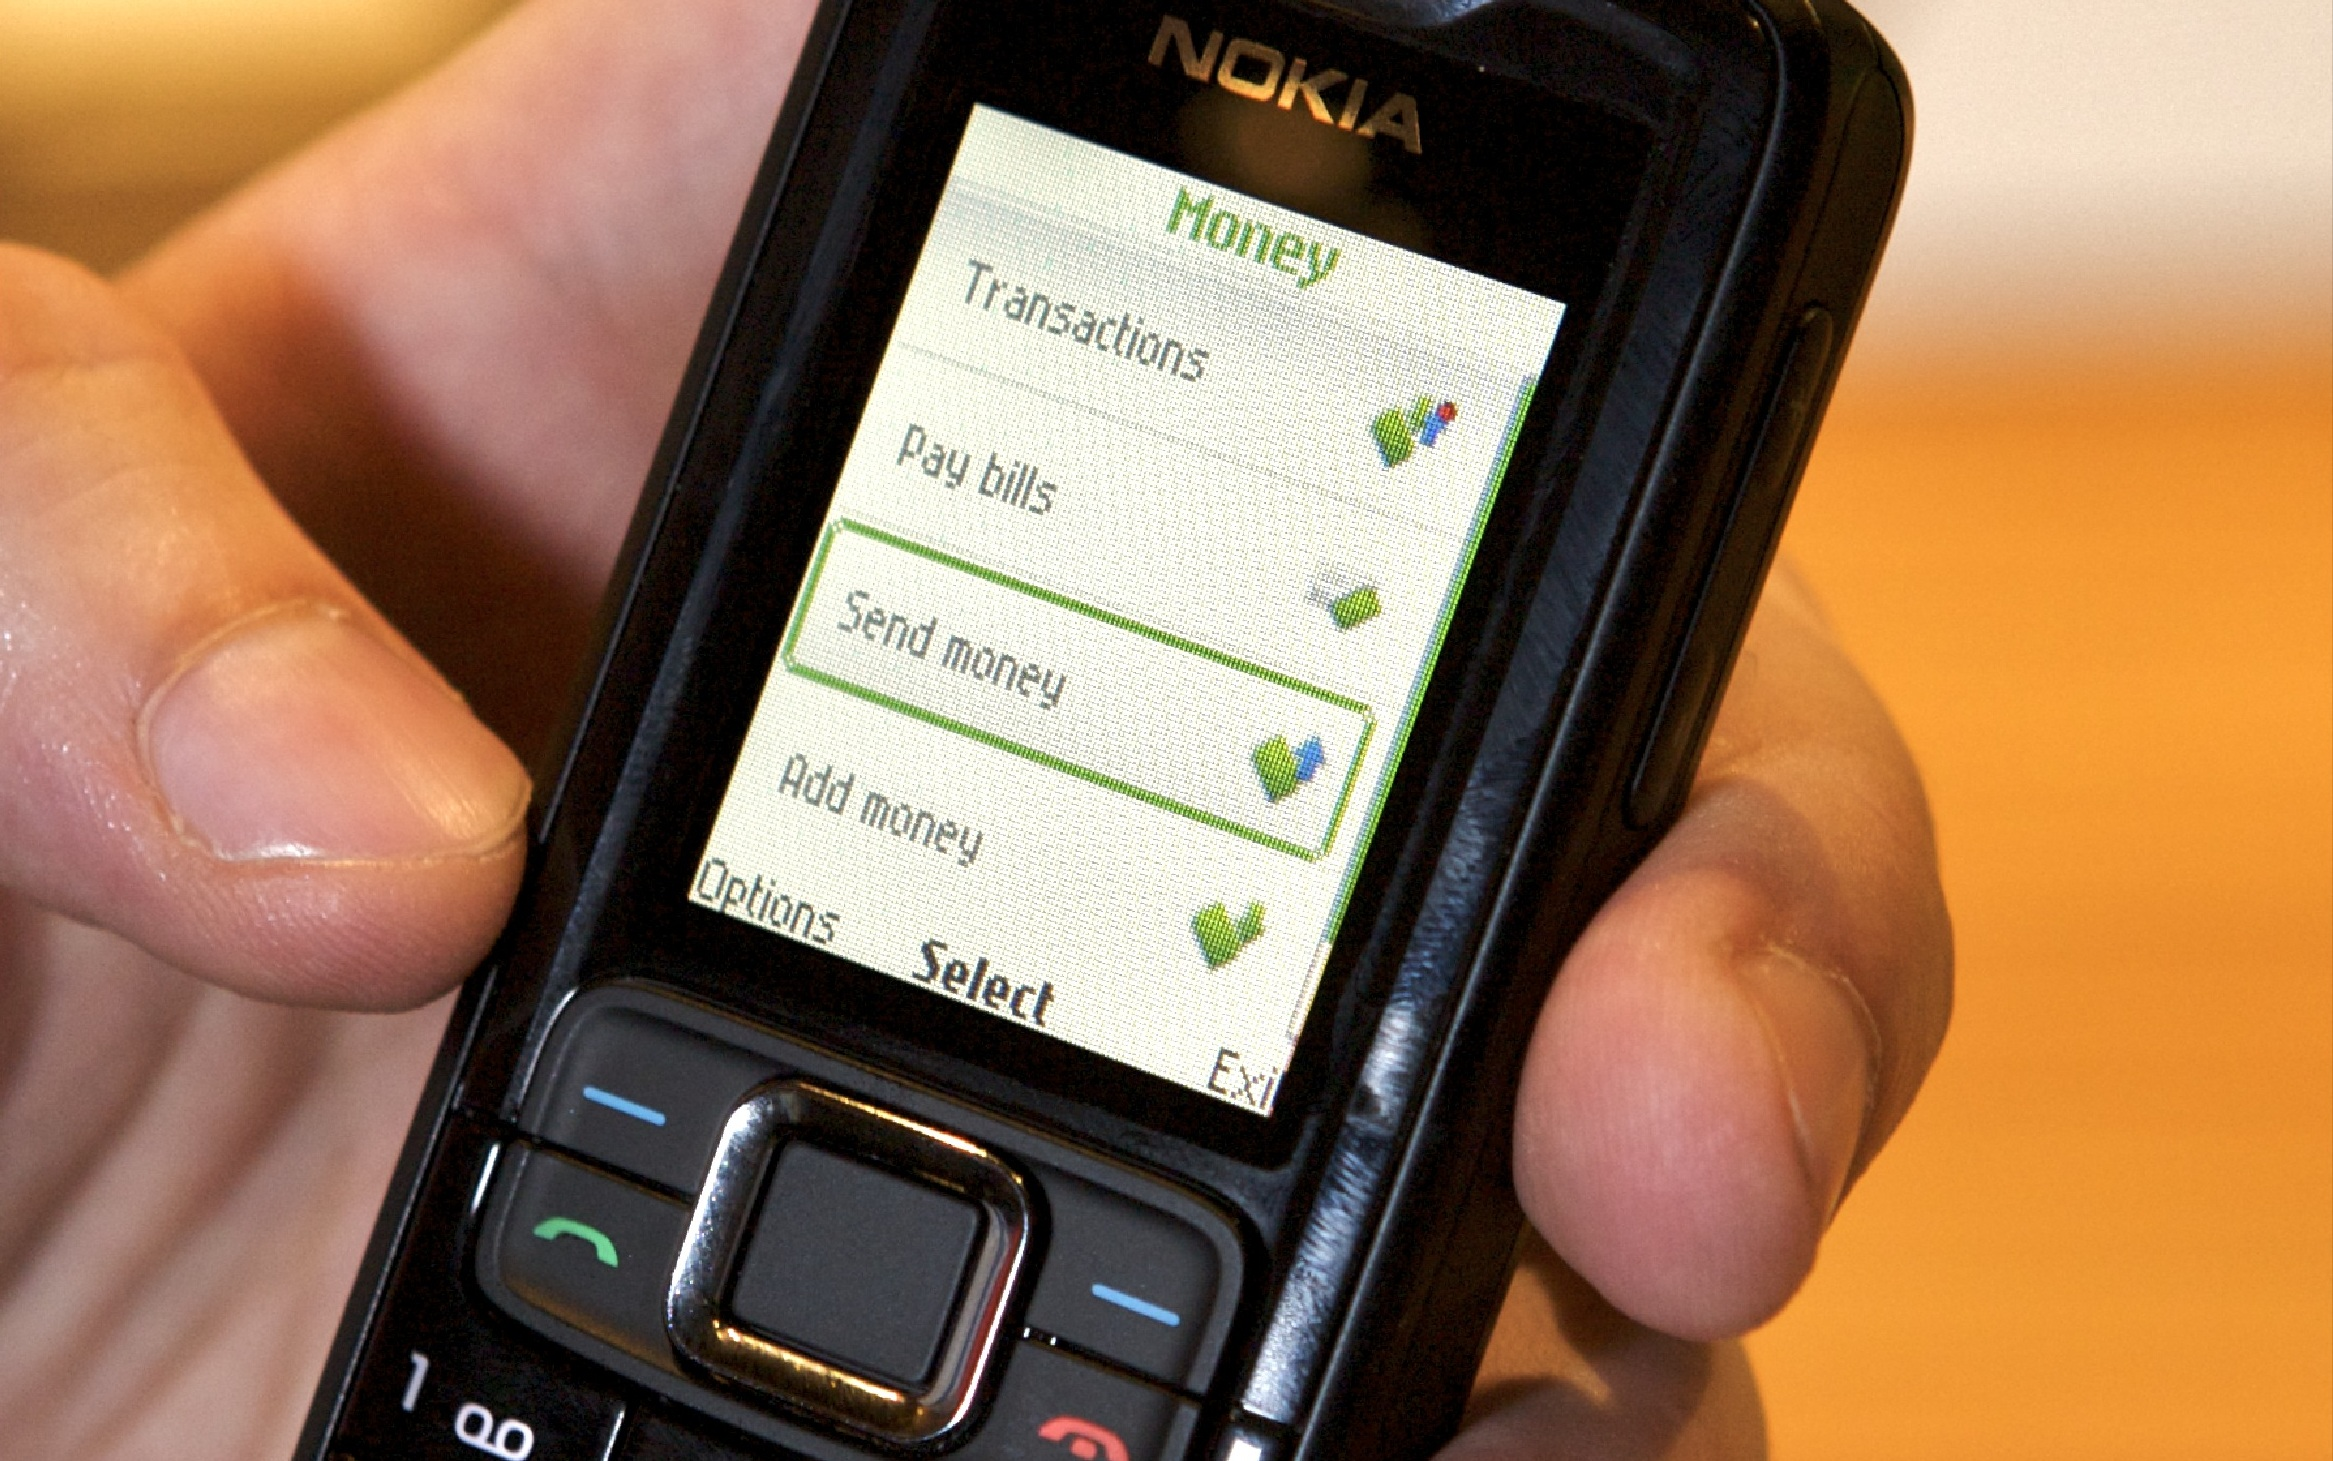 nfc mobile payments nokia money